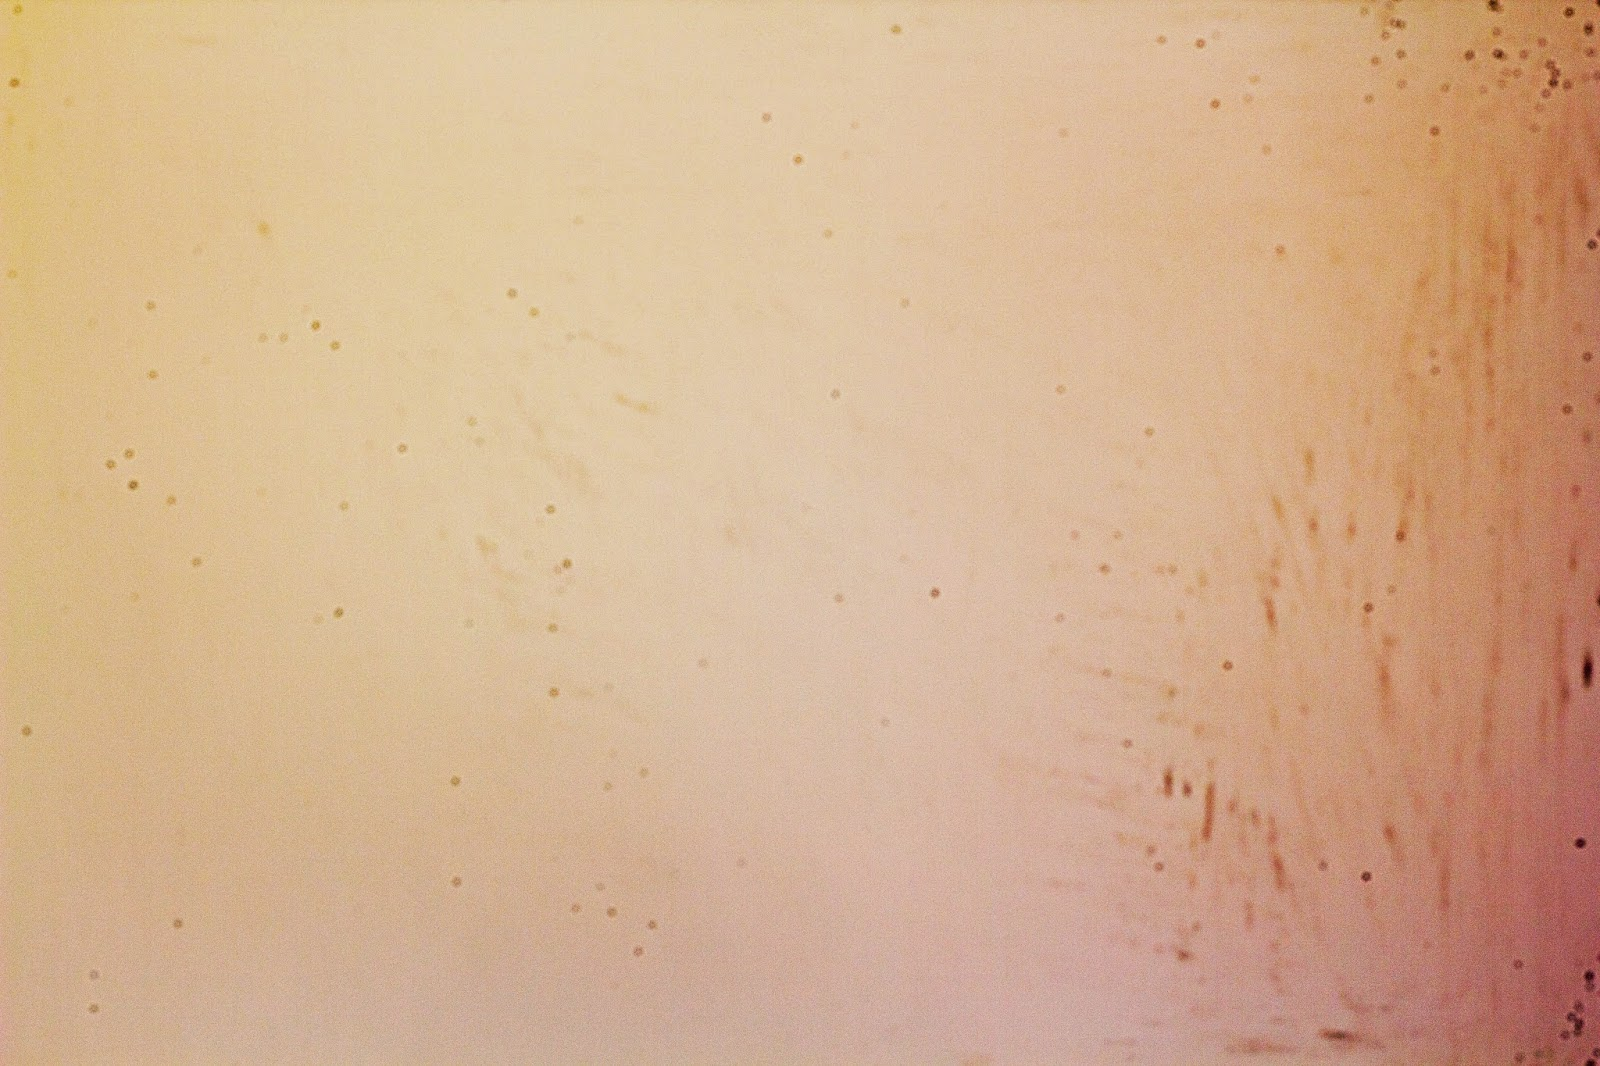 Test image with visible sensor dust and traces of sensor cleaning liquid